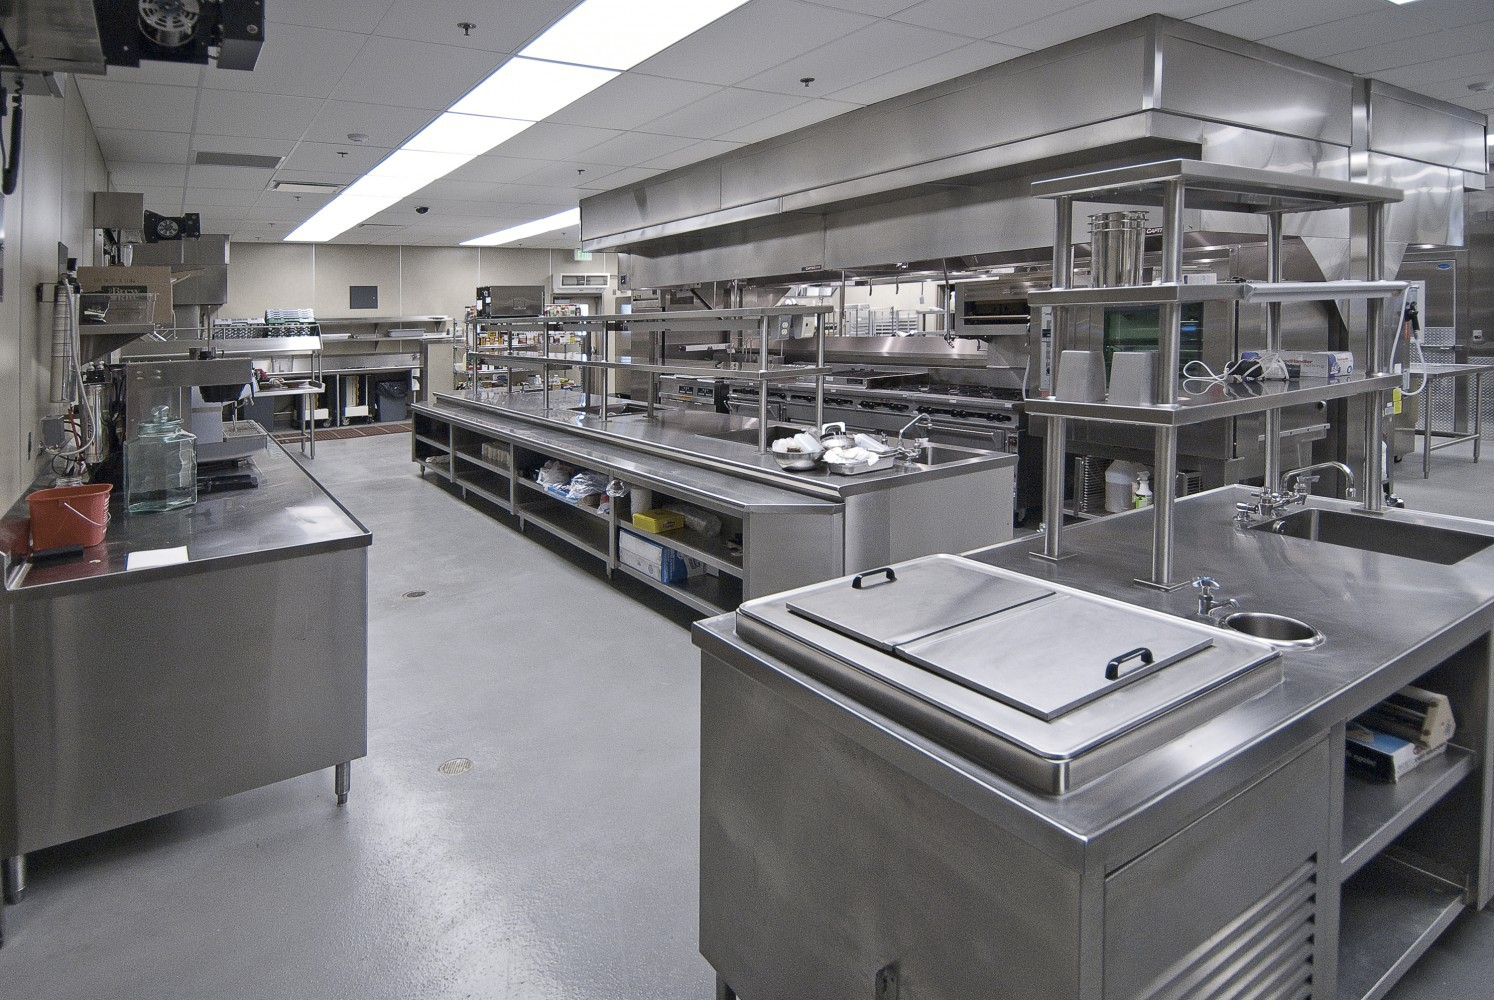 Top 5 Benefits of Leasing Restaurant Equipment — Aone Food Equipment